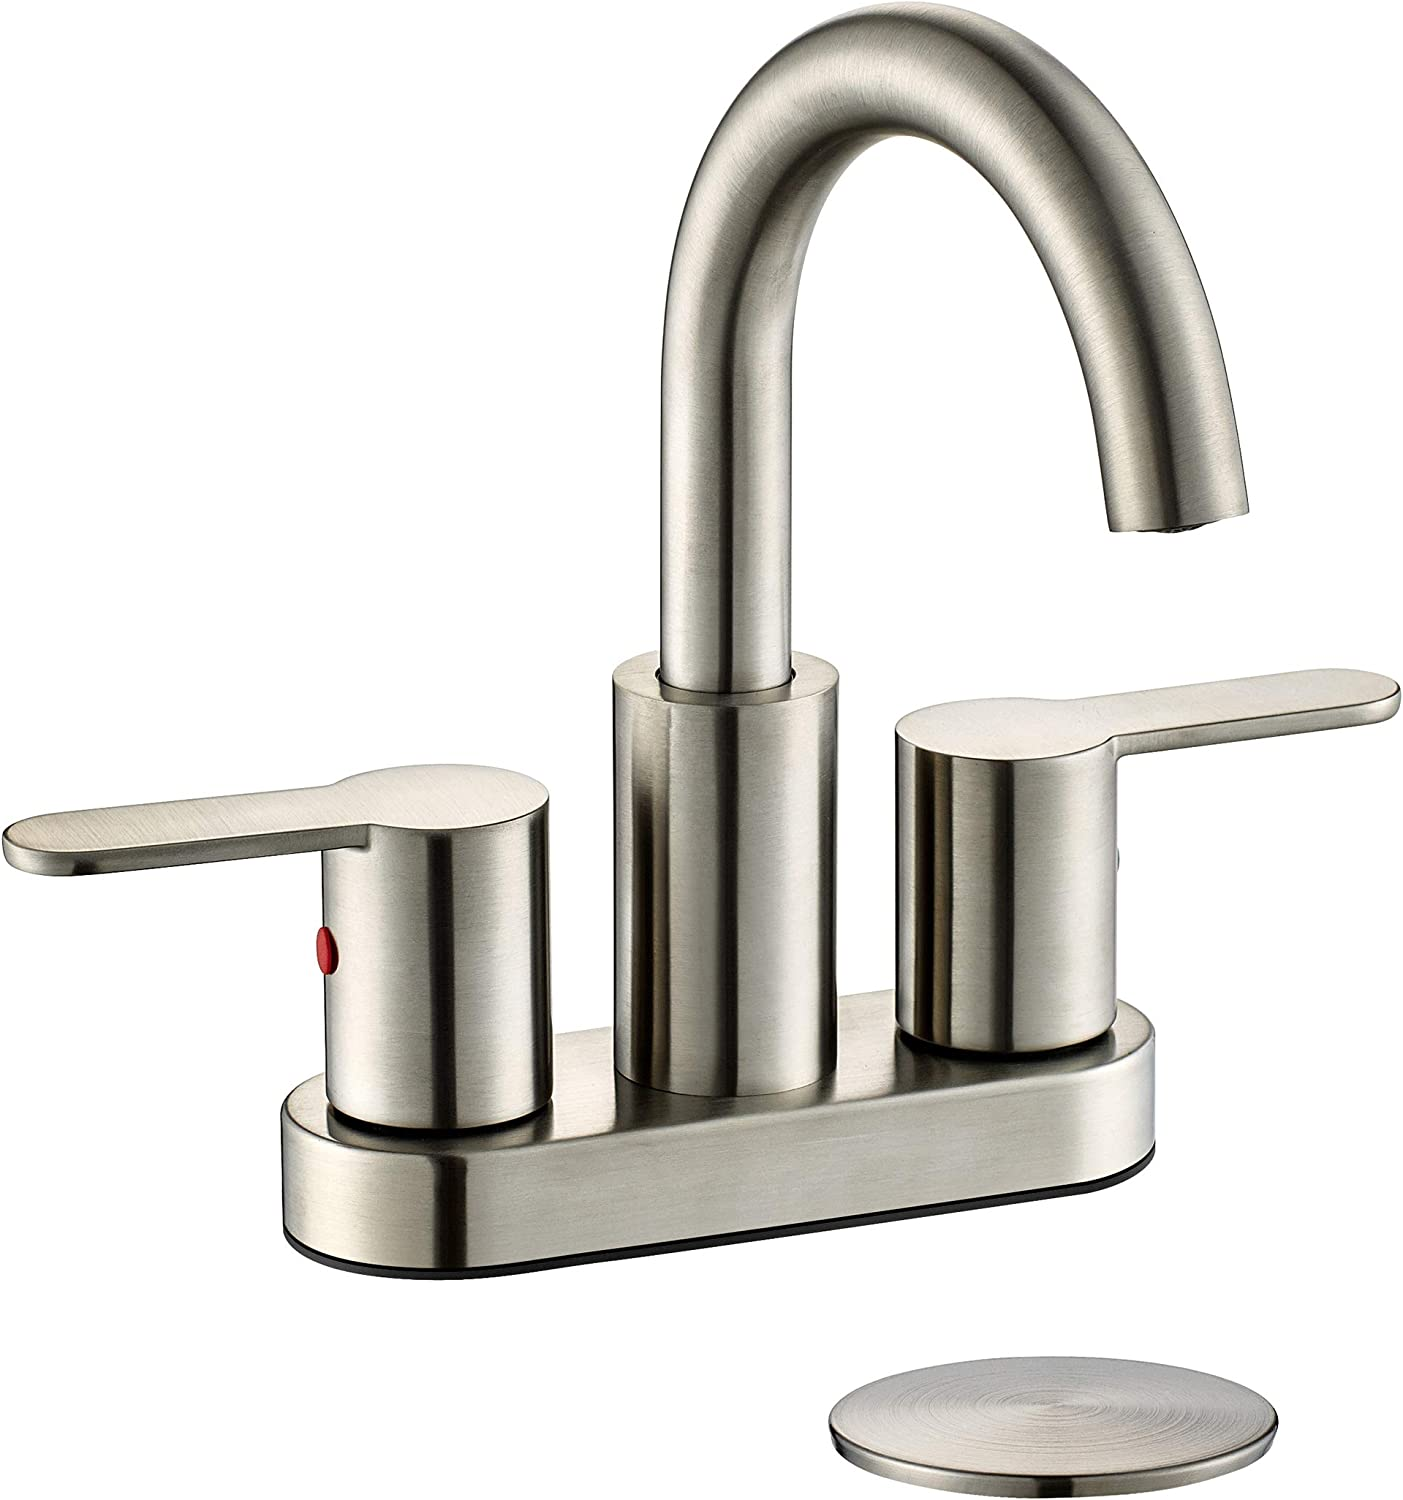 TimeArrow 2 Handle Atlanta Mall Centerset Bathroom Sink Faucet Nickel Brushed Clearance SALE! Limited time!